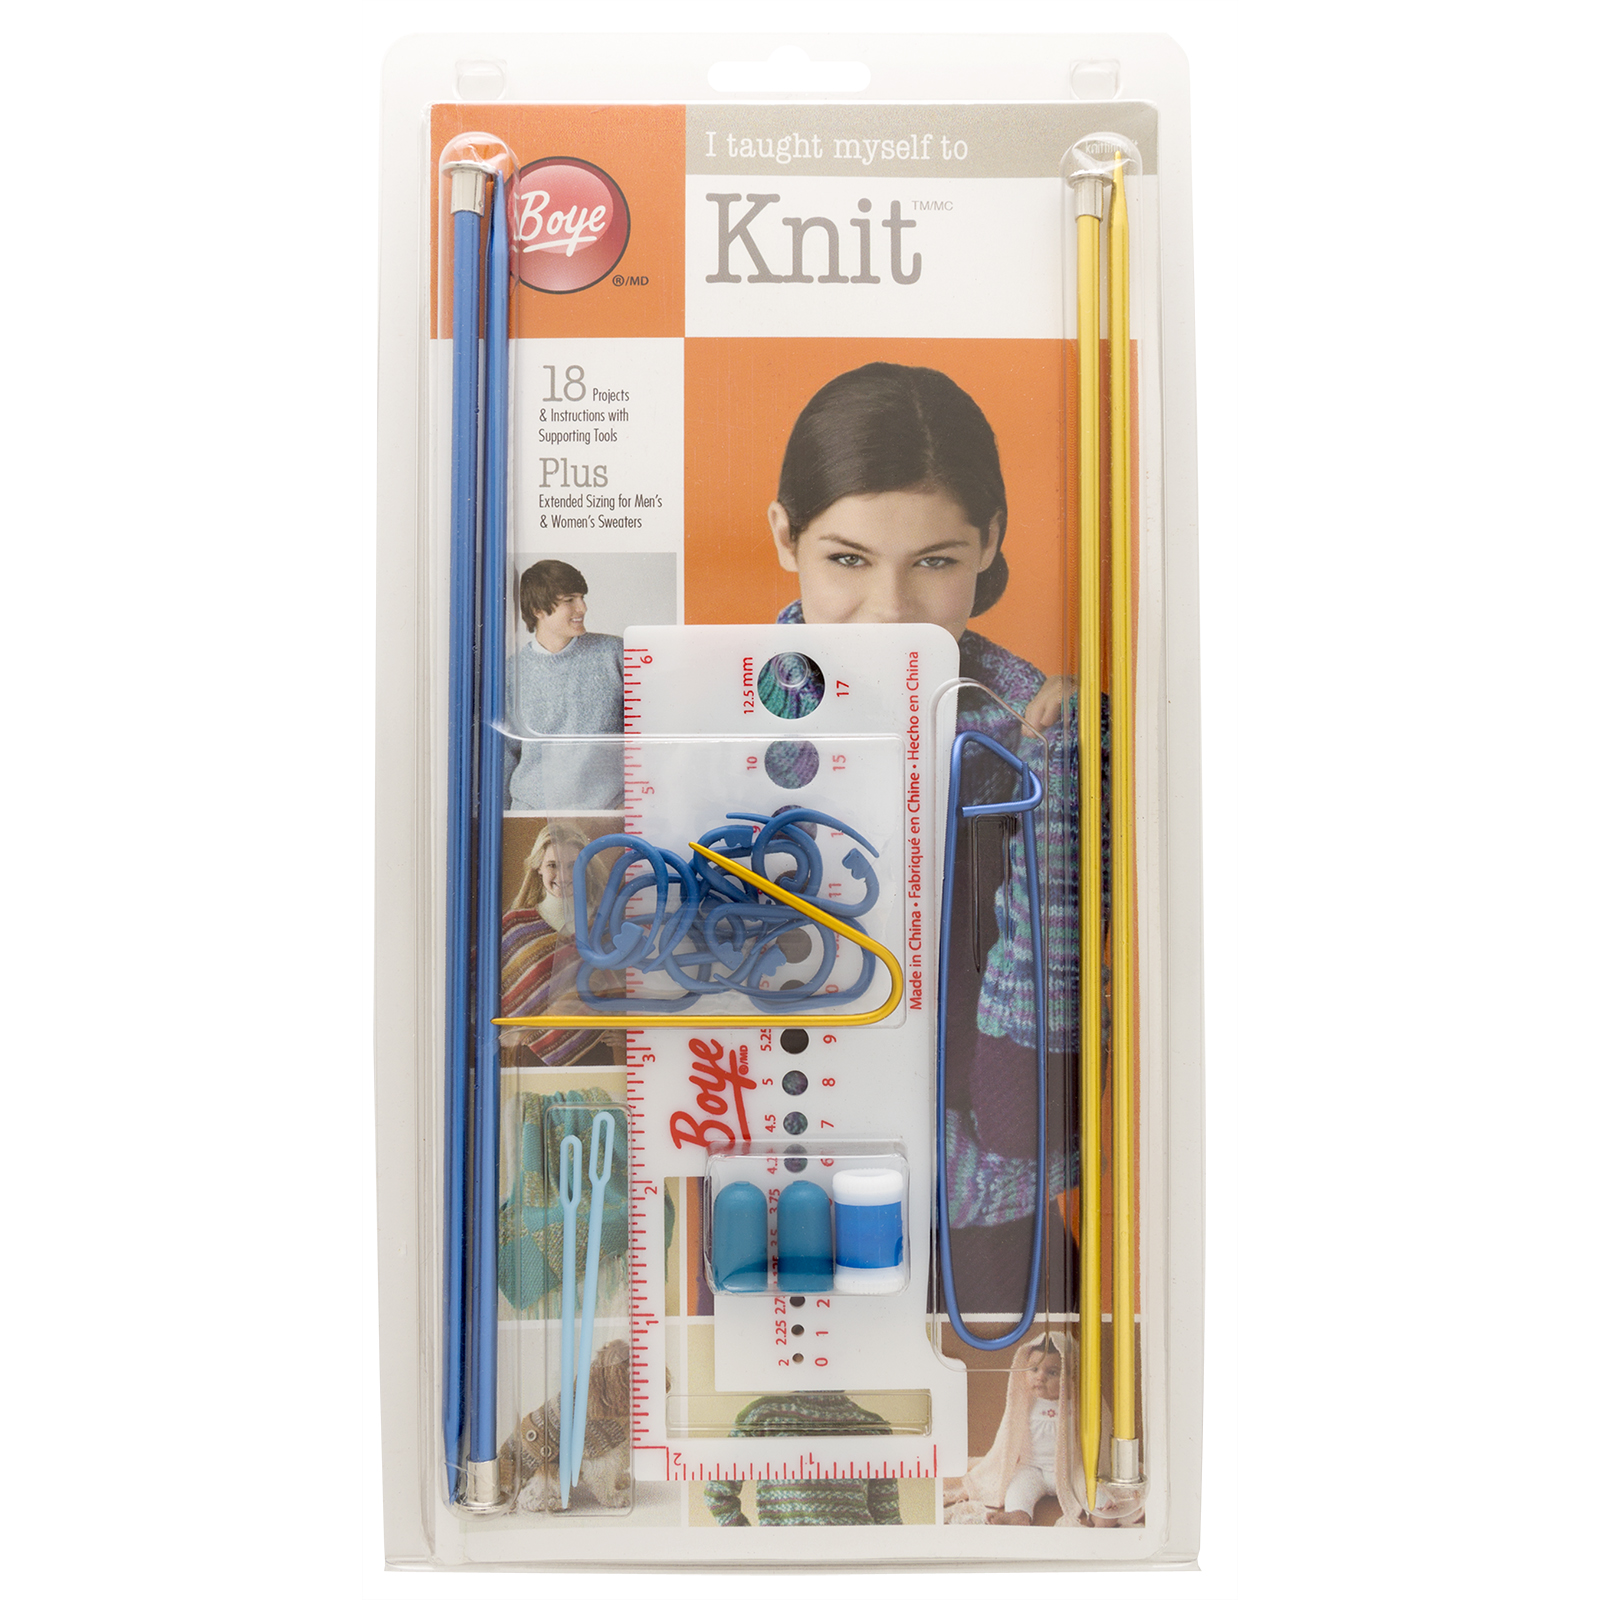 Knitting Kits Michaels : Find the boye i taught myself to knit™ kit at michaels